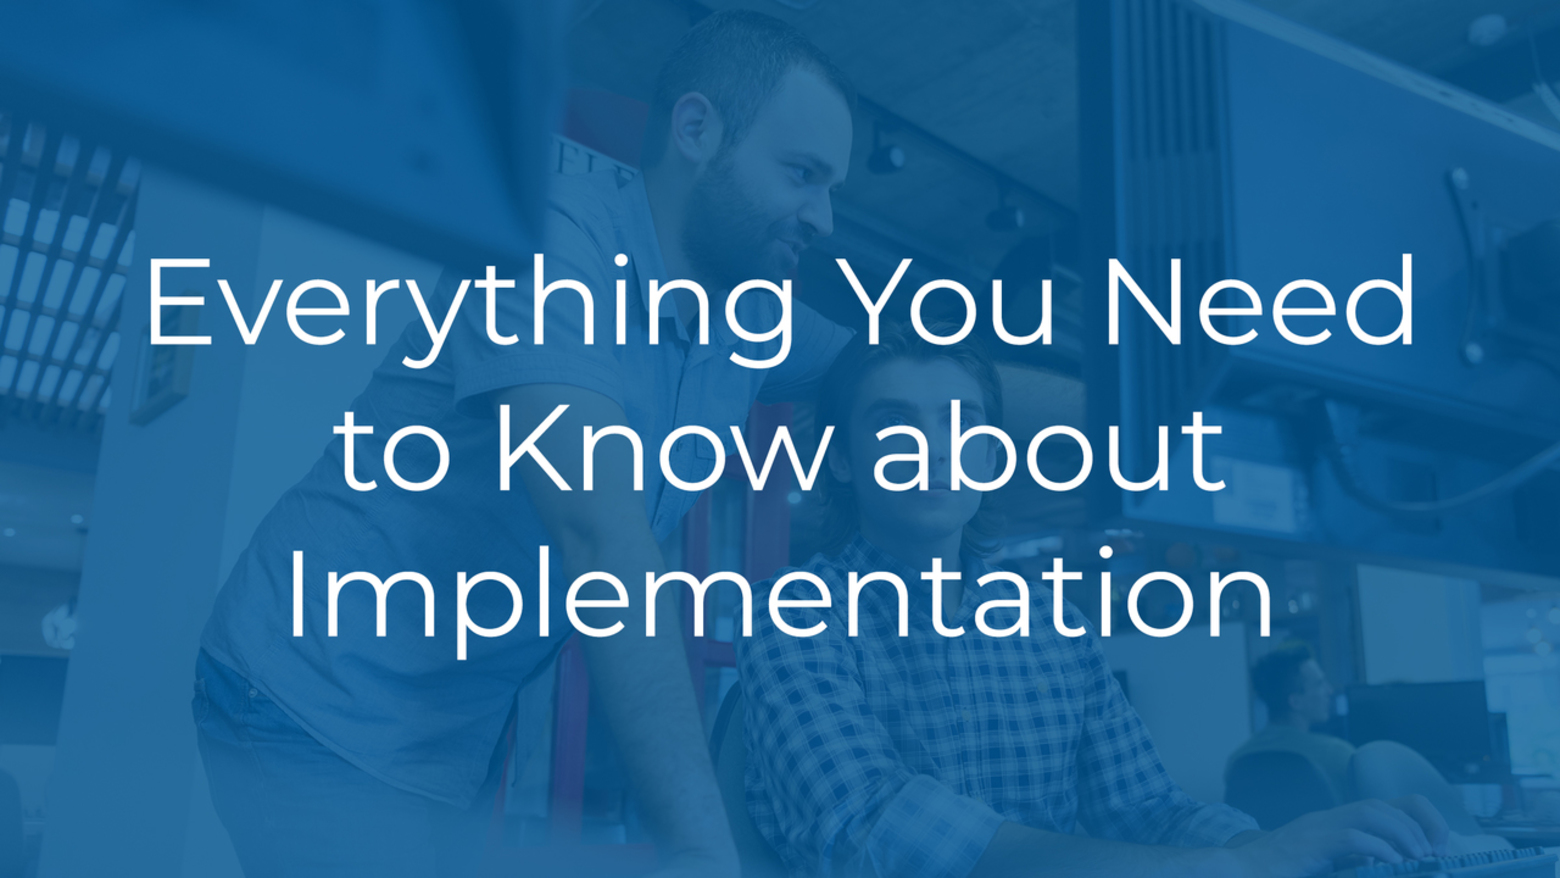 Everything You Need to Know about Implementation